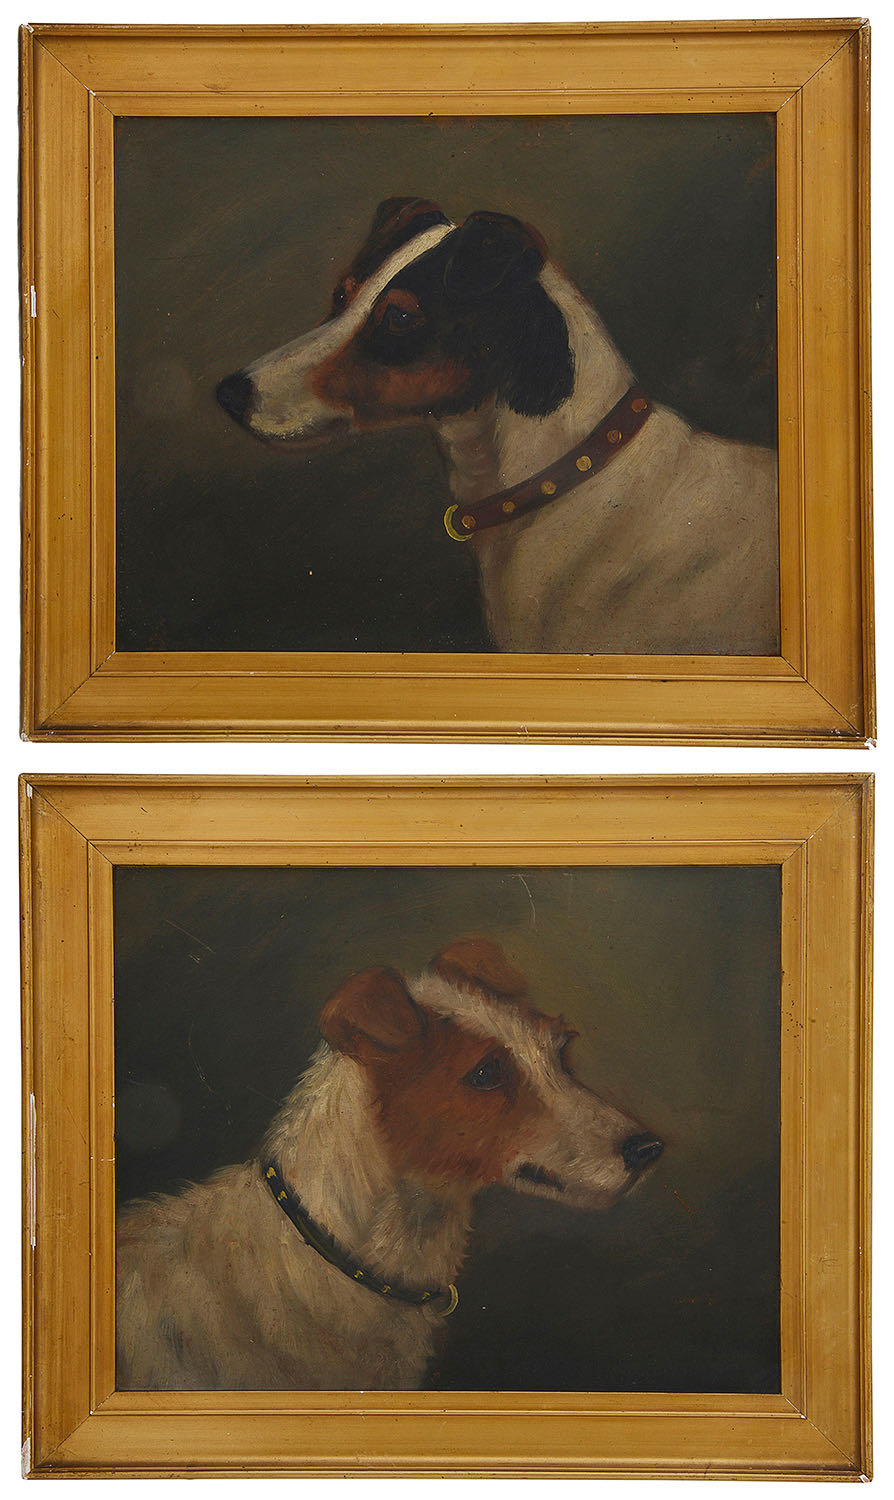 Lot 44 - Early 20th century Brit. School, A pair of portraits of Parson Jack Russell Terriers, oil on board